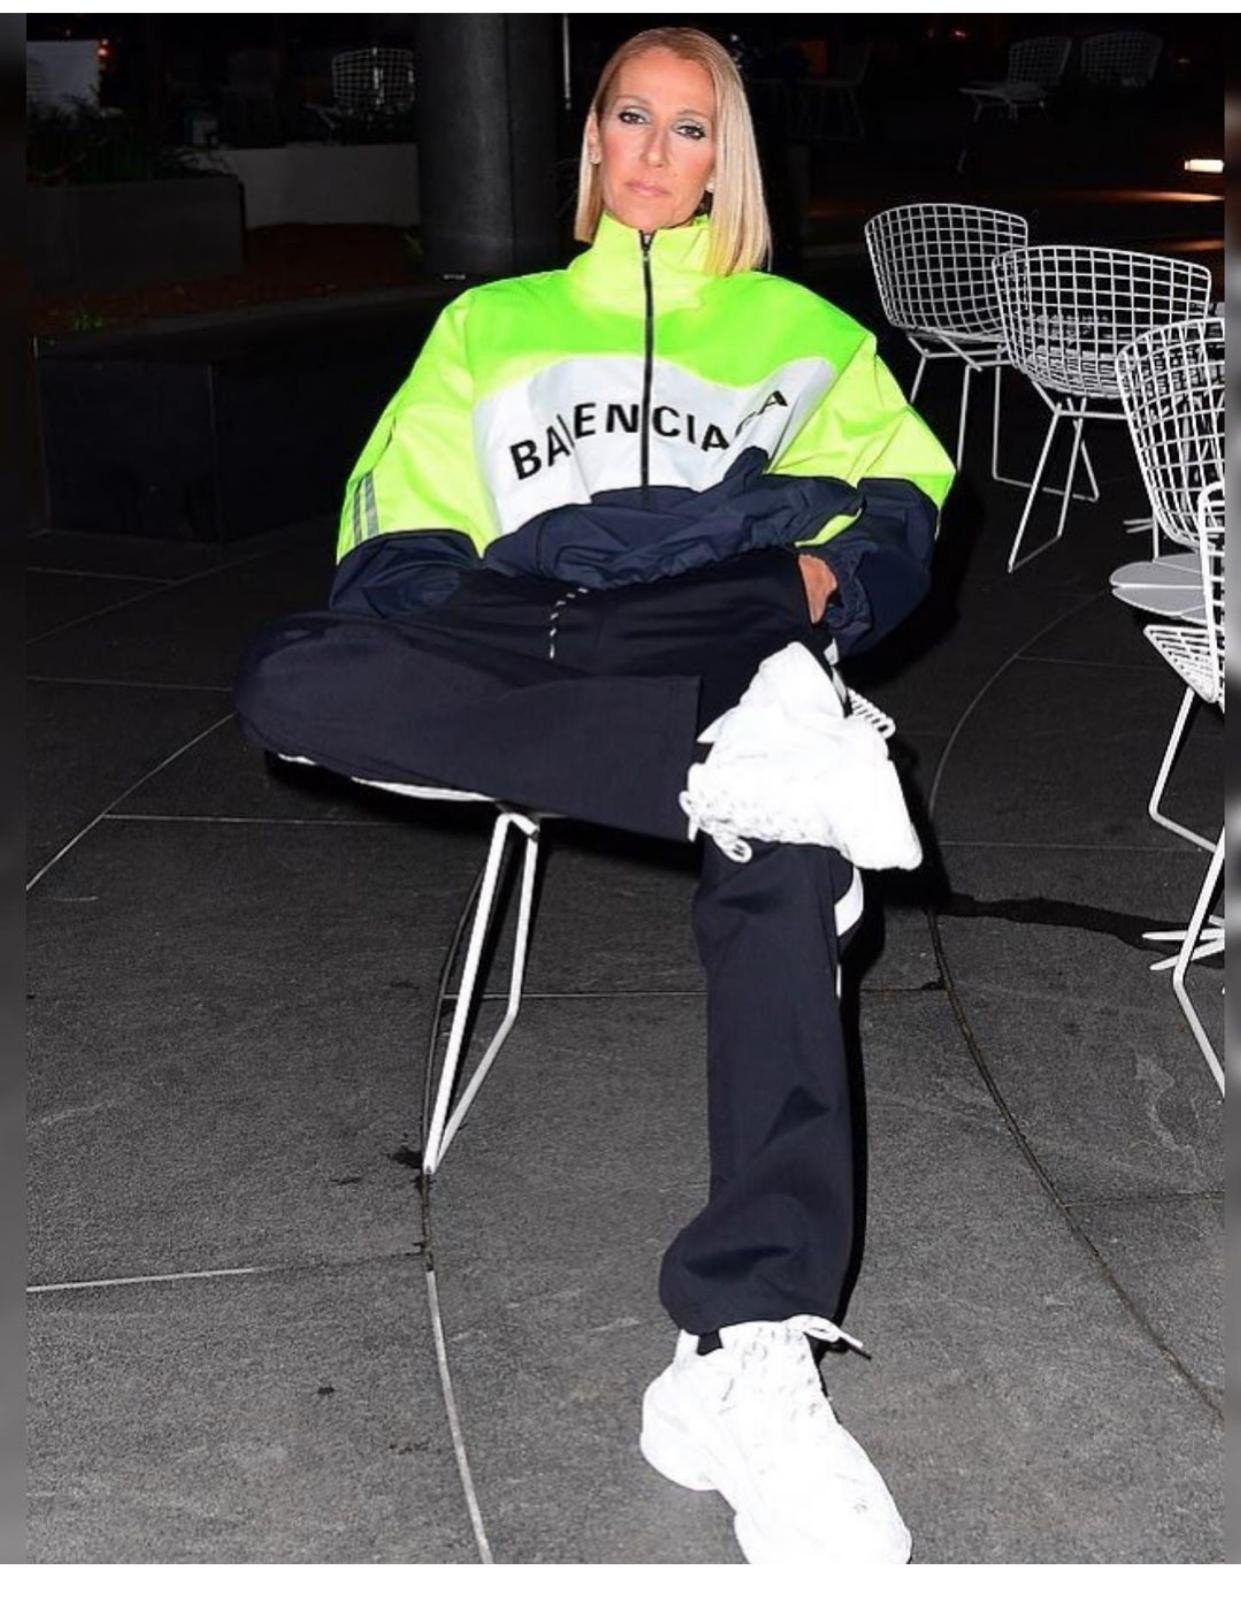 Celine Dion looks cool in neon Balenciaga streetwear out and about in NYC